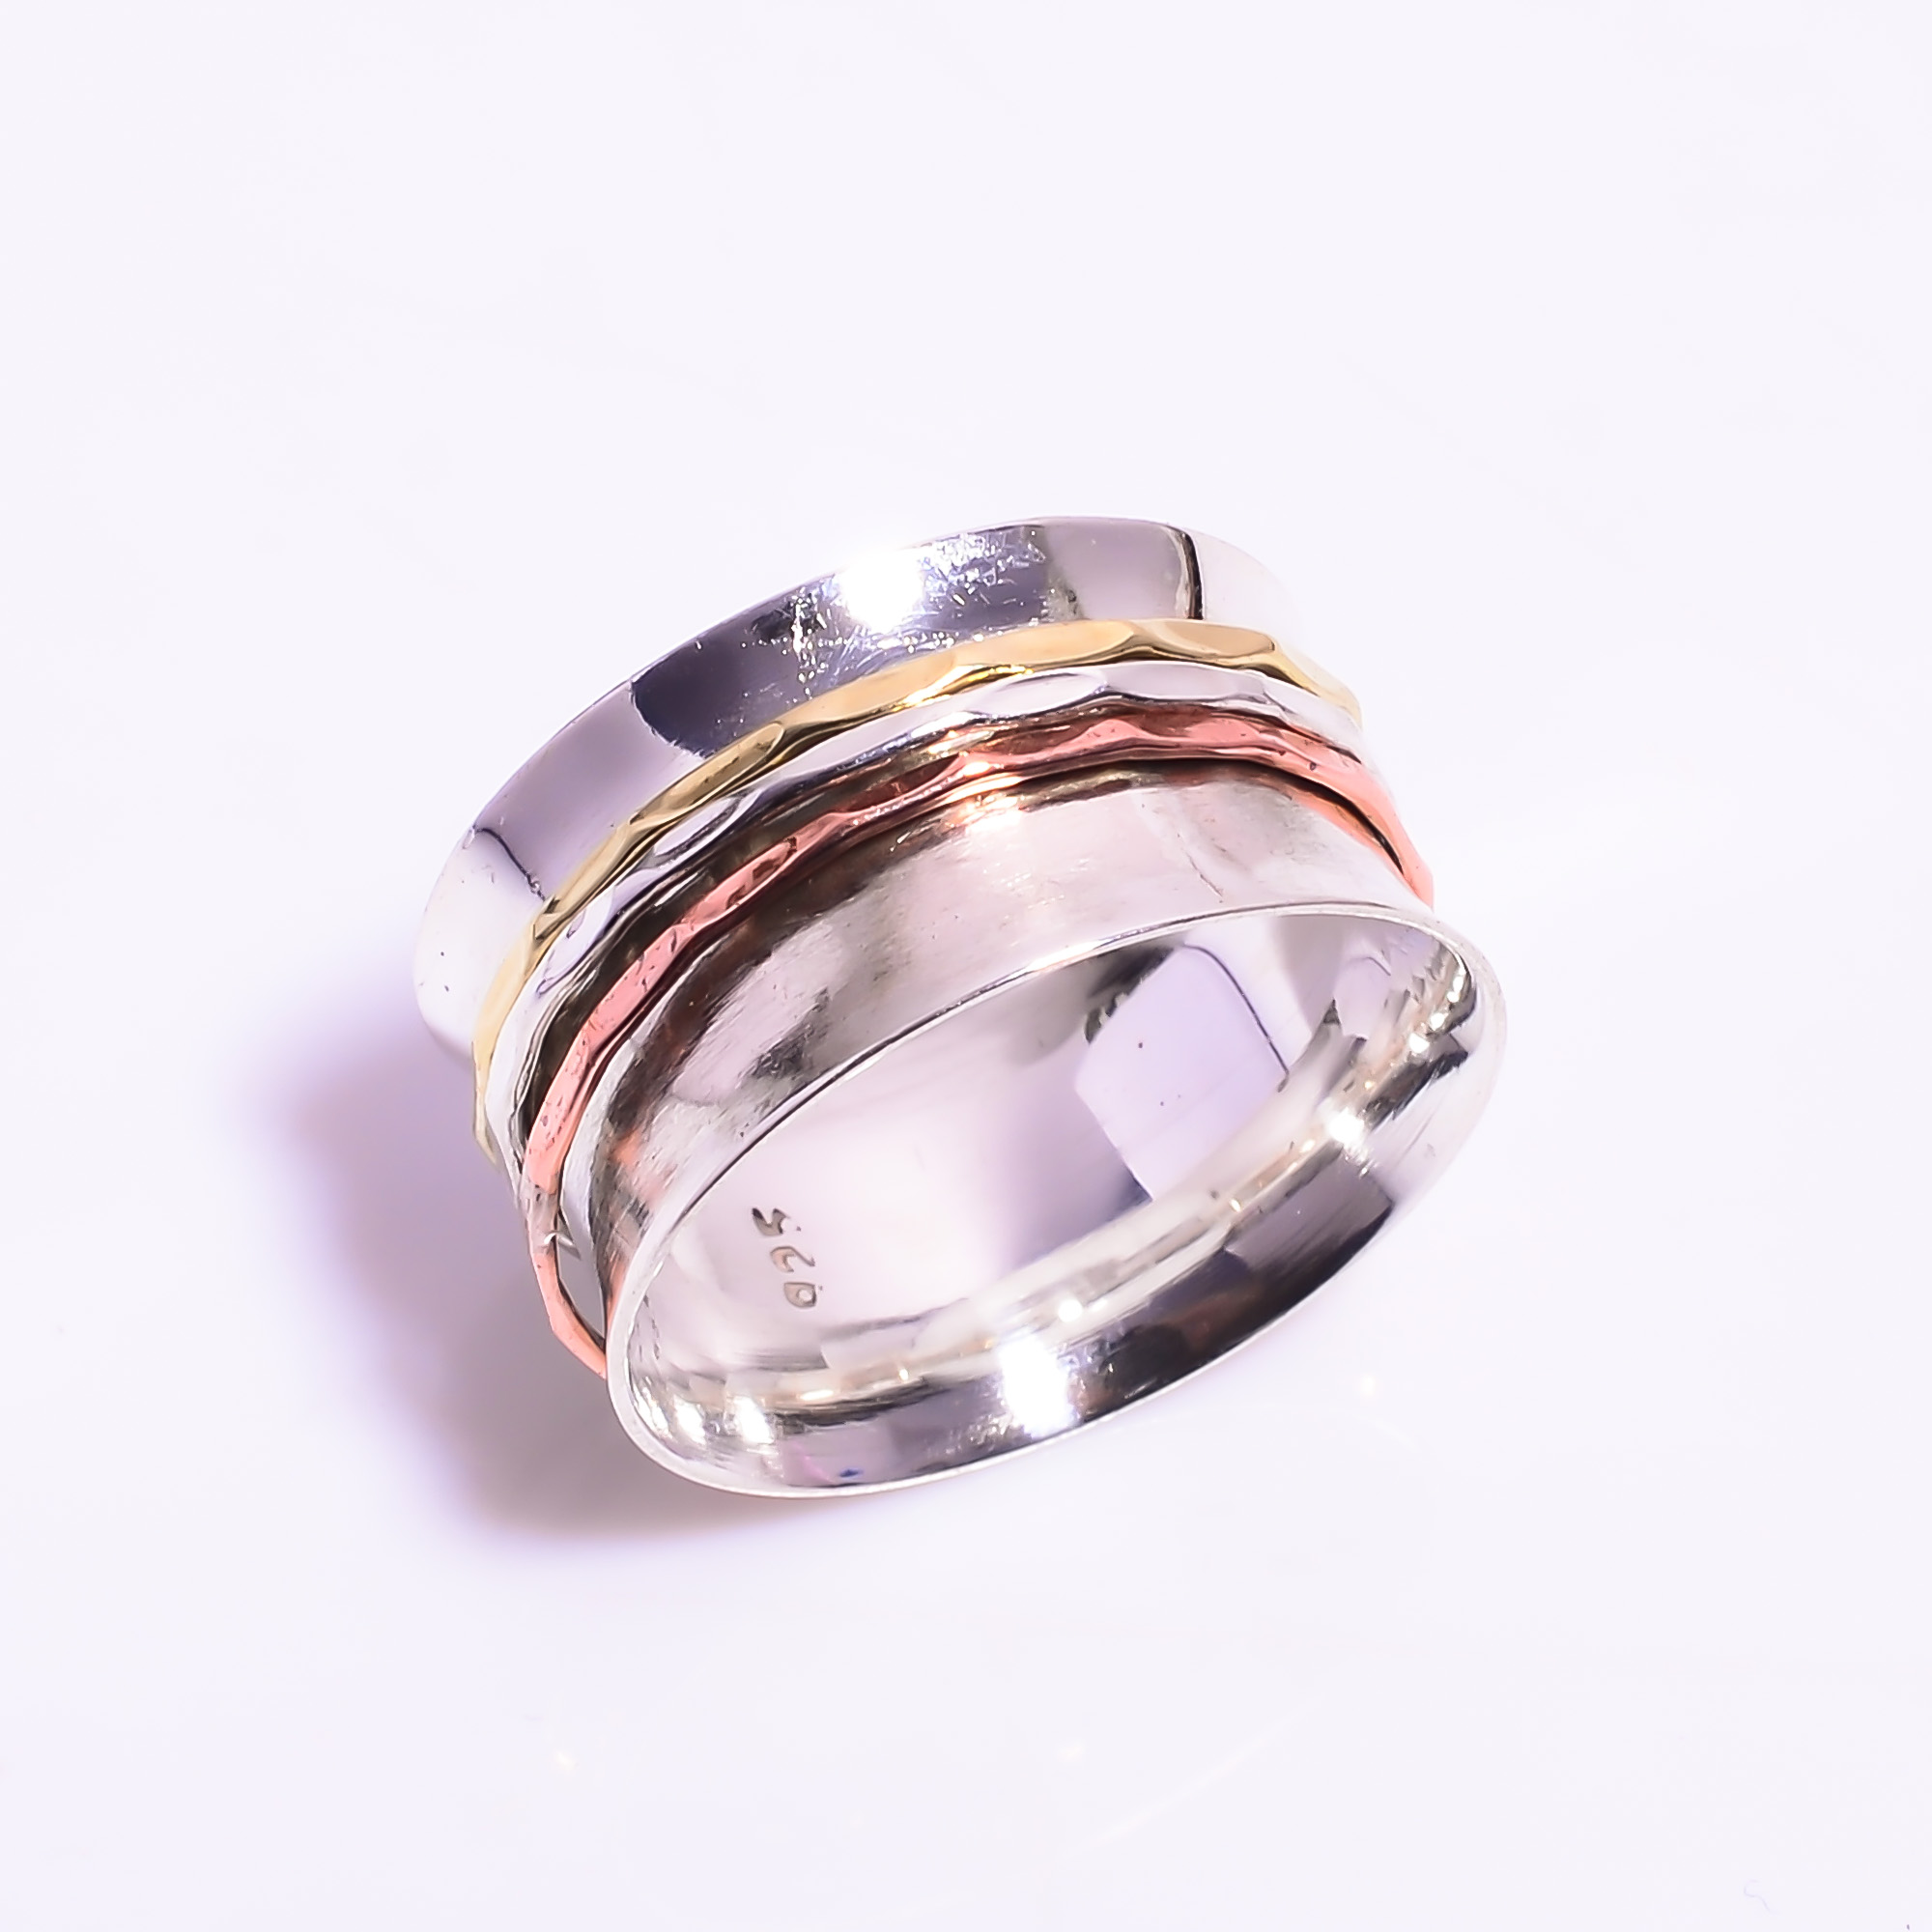 925 Sterling Silver Meditation Spinner Ring Size US 8